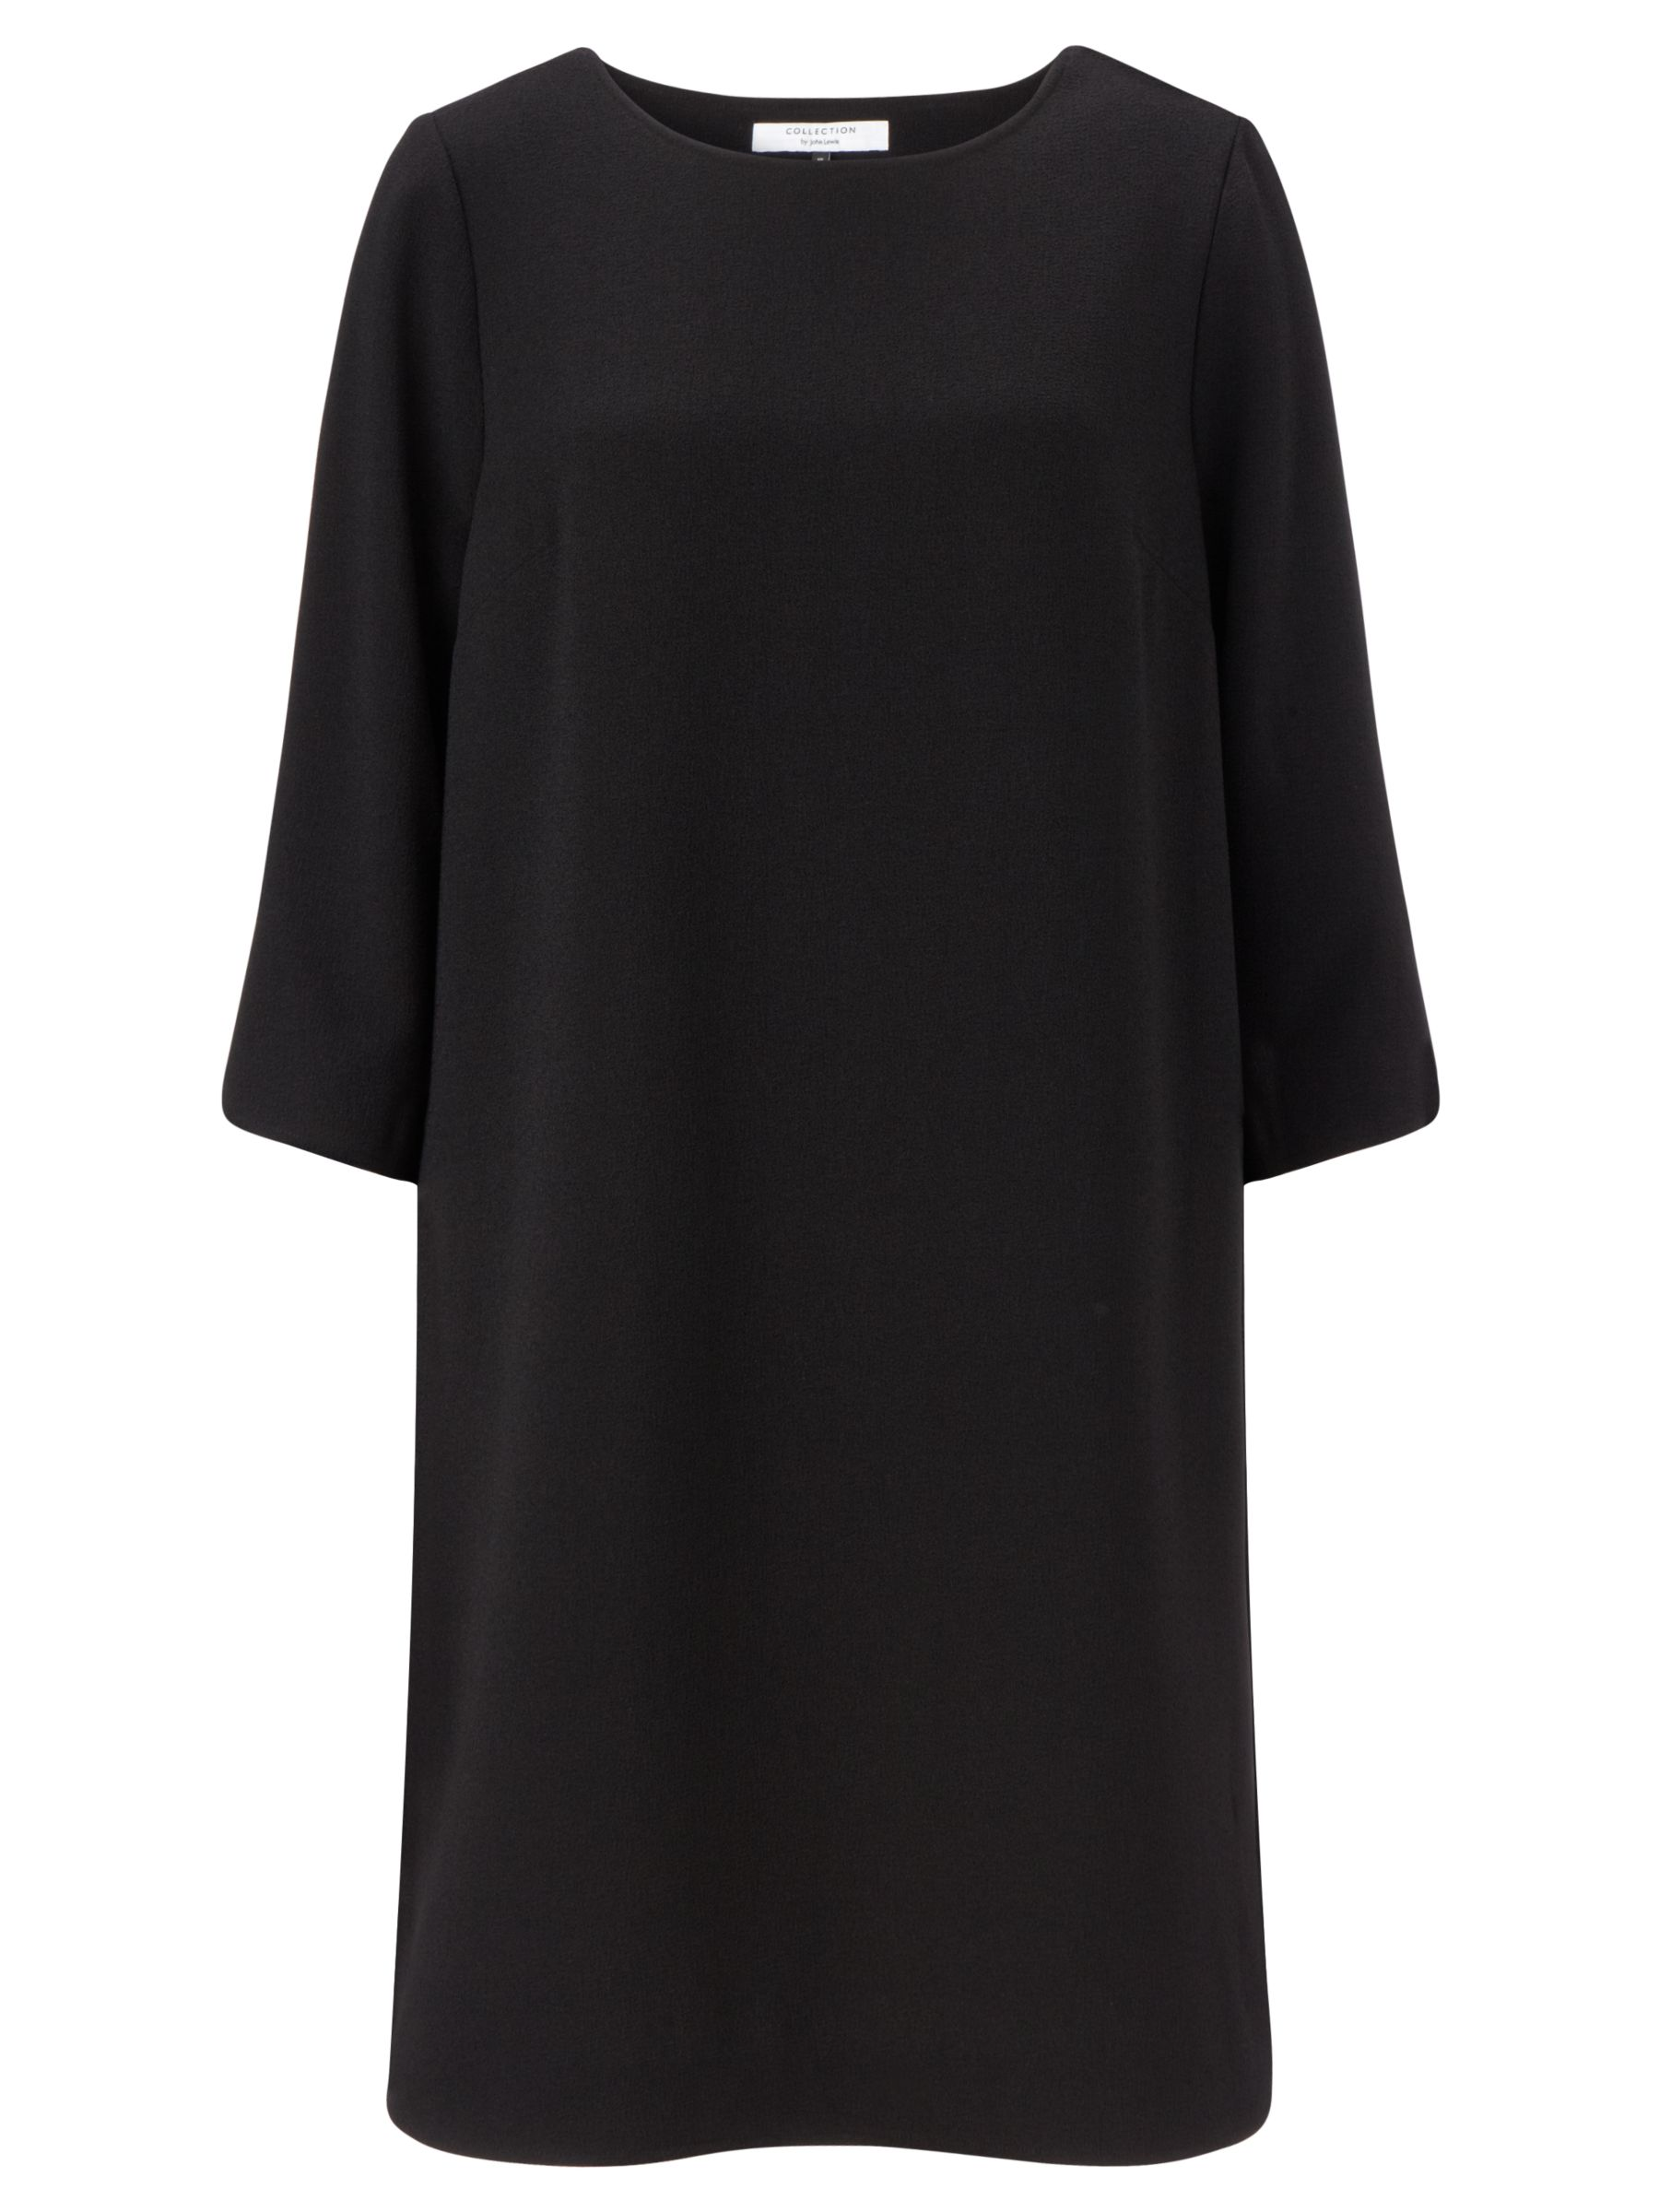 collection by john lewis shift dress, collection, john, lewis, shift, dress, collection by john lewis, canteloupe|black, 14|8, clearance, womenswear offers, john lewis brands, special offers, women, womens dresses, fashion magazine, brands a-k, latest reductions, womens dresses offers, inactive womenswear, outfit ideas, new season workwear, 1739192